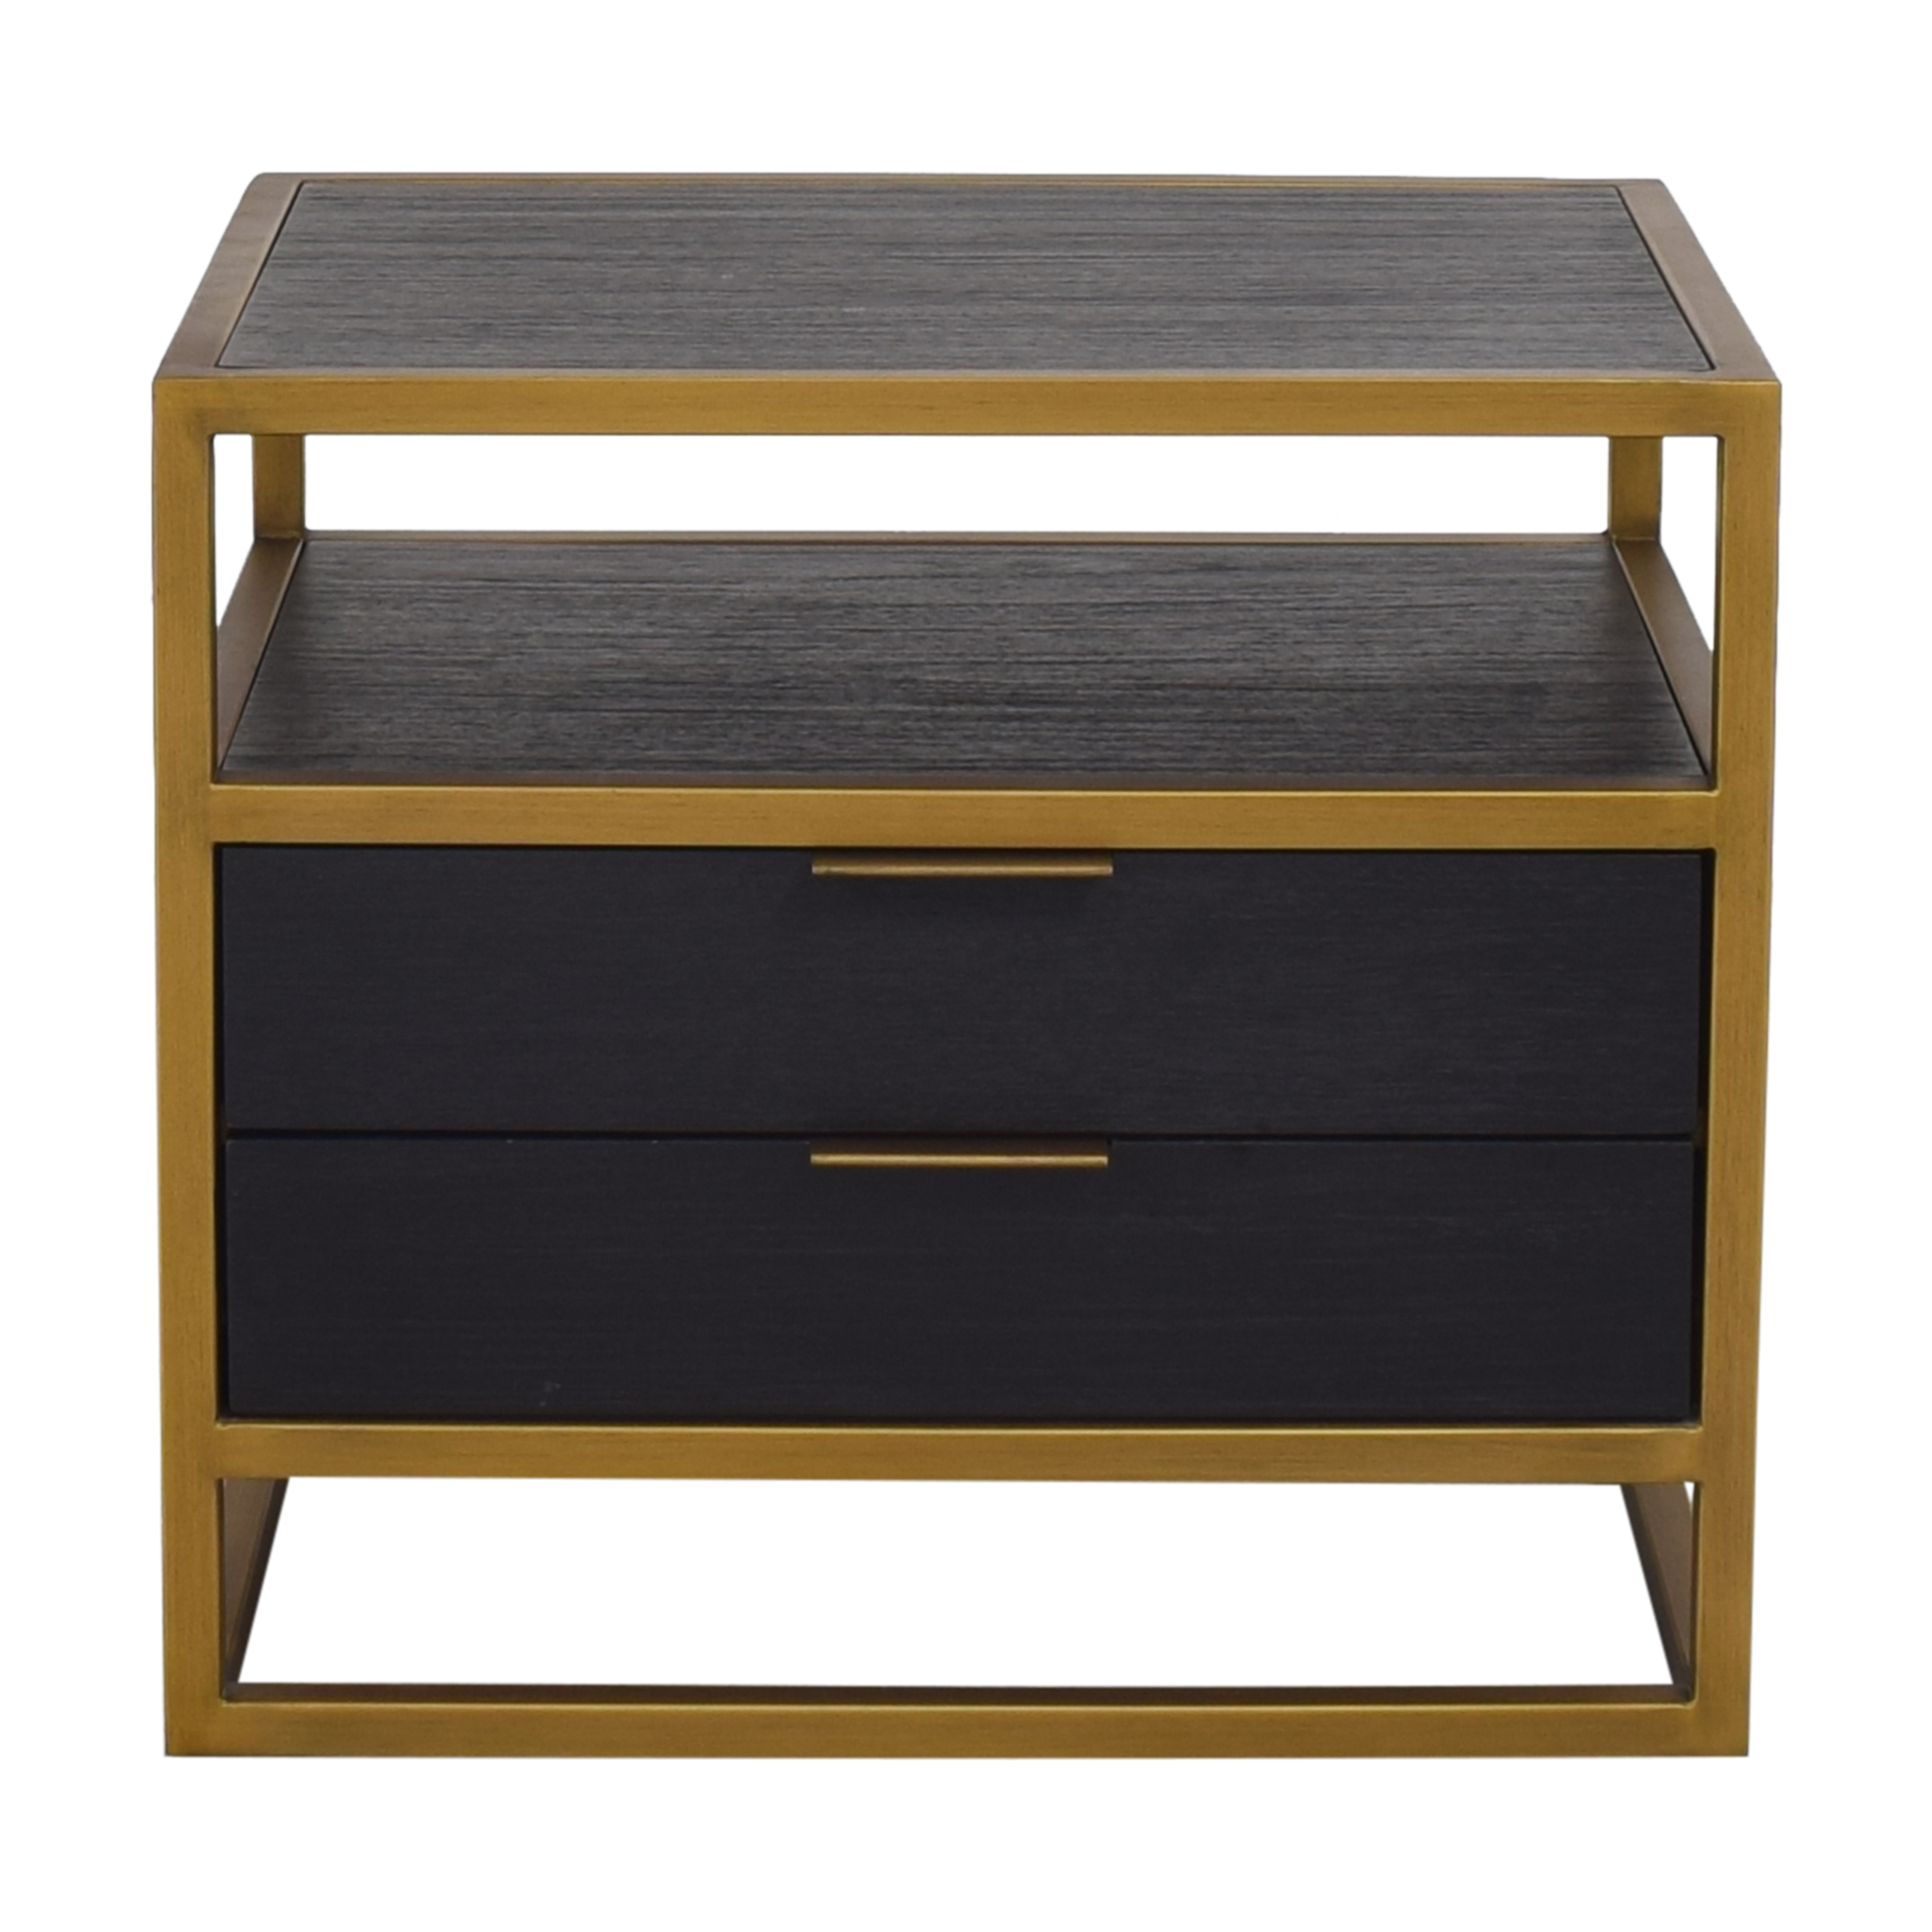 Crate & Barrel Crate & Barrel Oxford Two Drawer Nightstand coupon